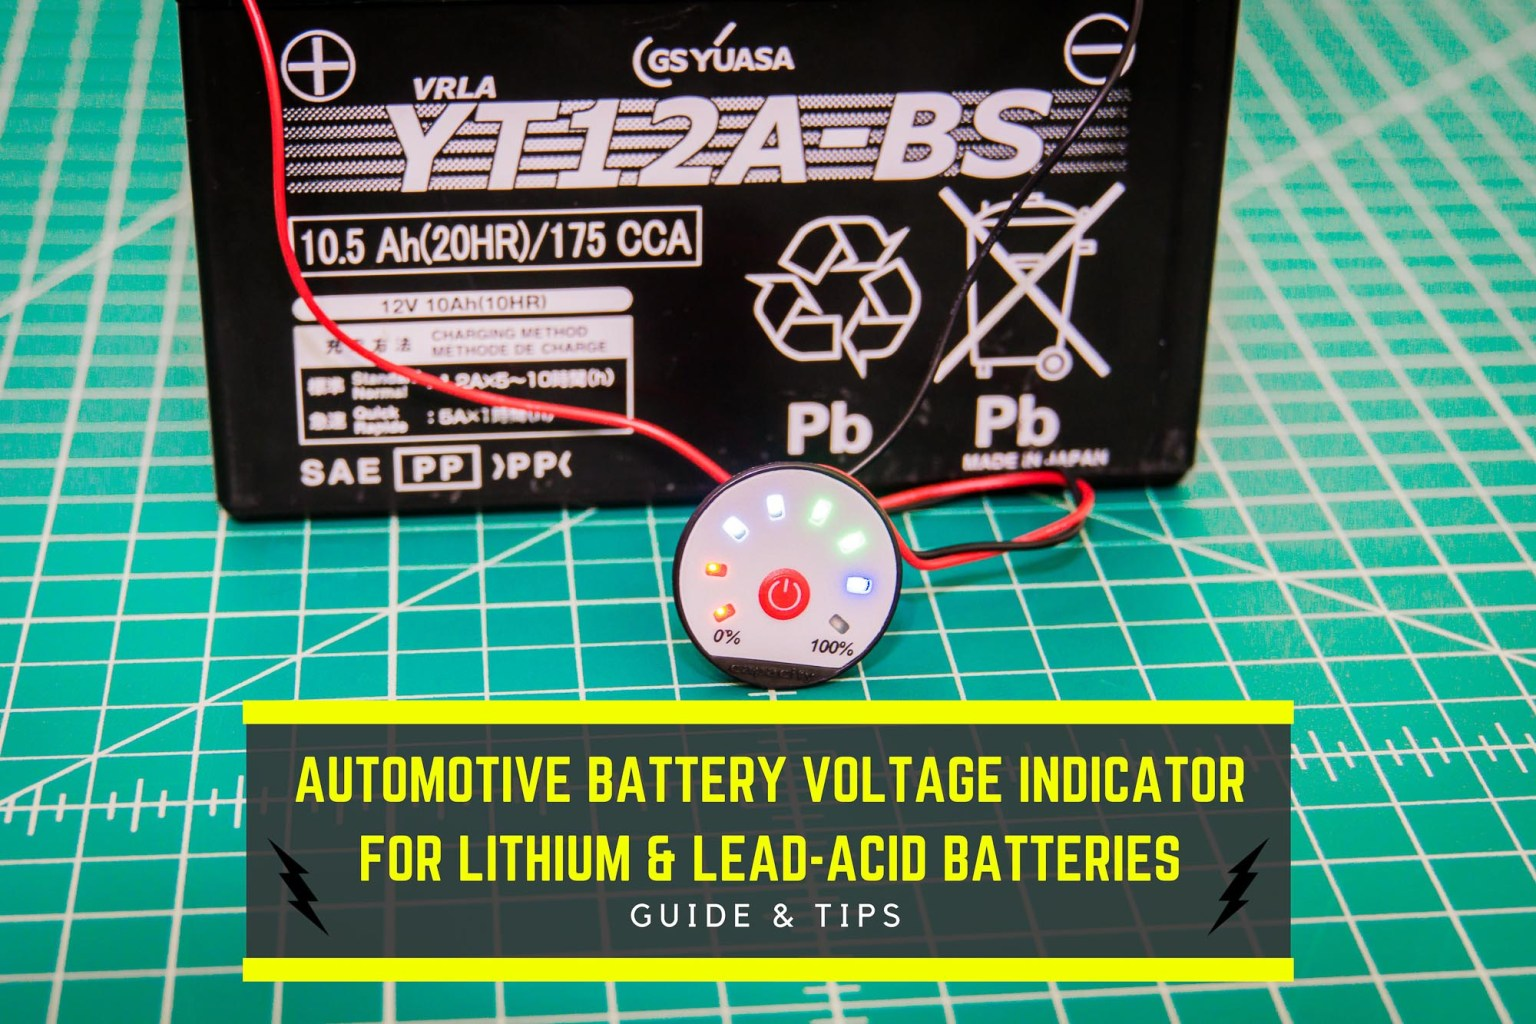 Diys Articles Reviews And More Battery Voltage Indicator Automotive For Lithium Lead Acid Batteries Guide